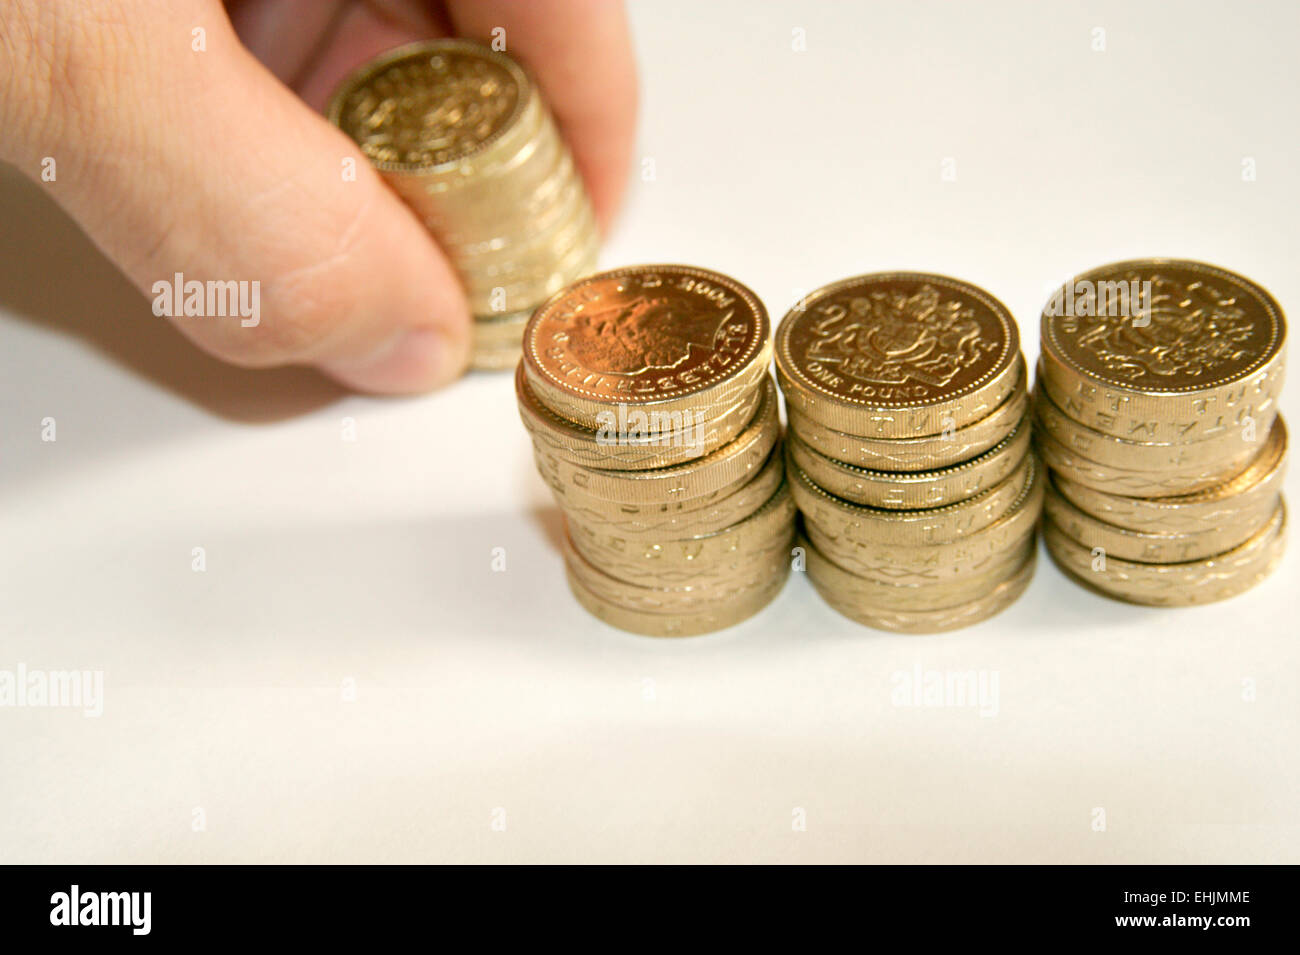 hand counting cash sterling pound coins - Stock Image